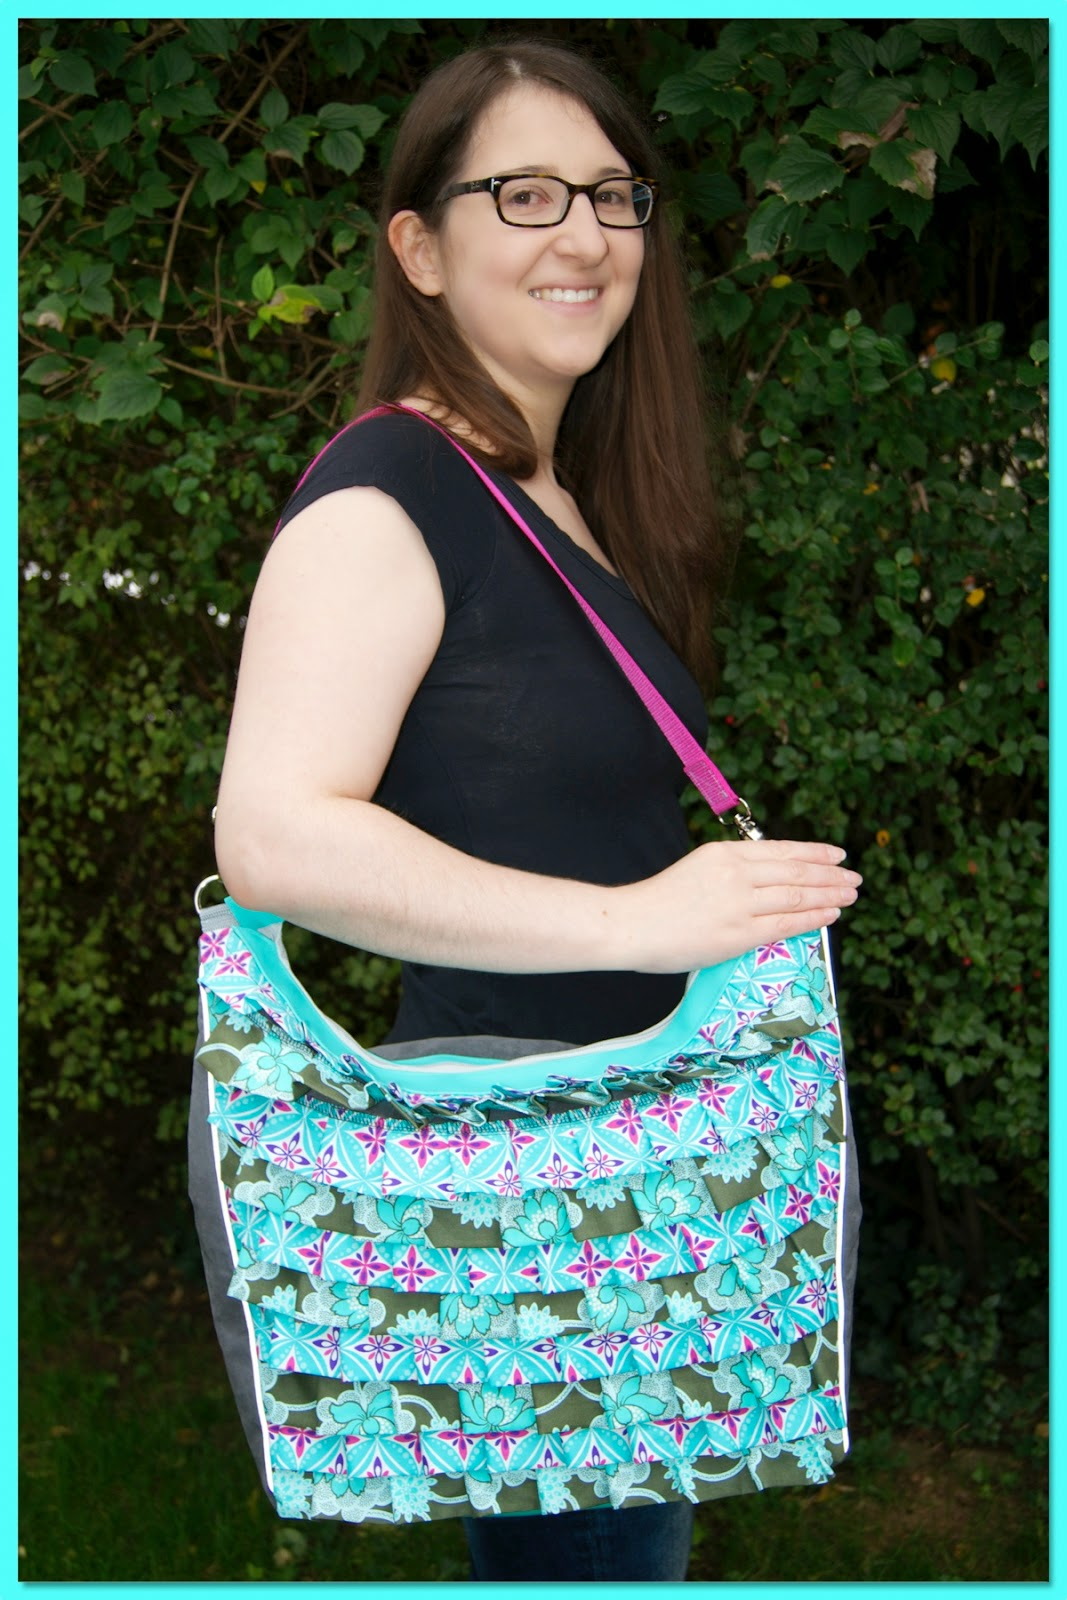 Zita beim Blind-Sew-Along 2014